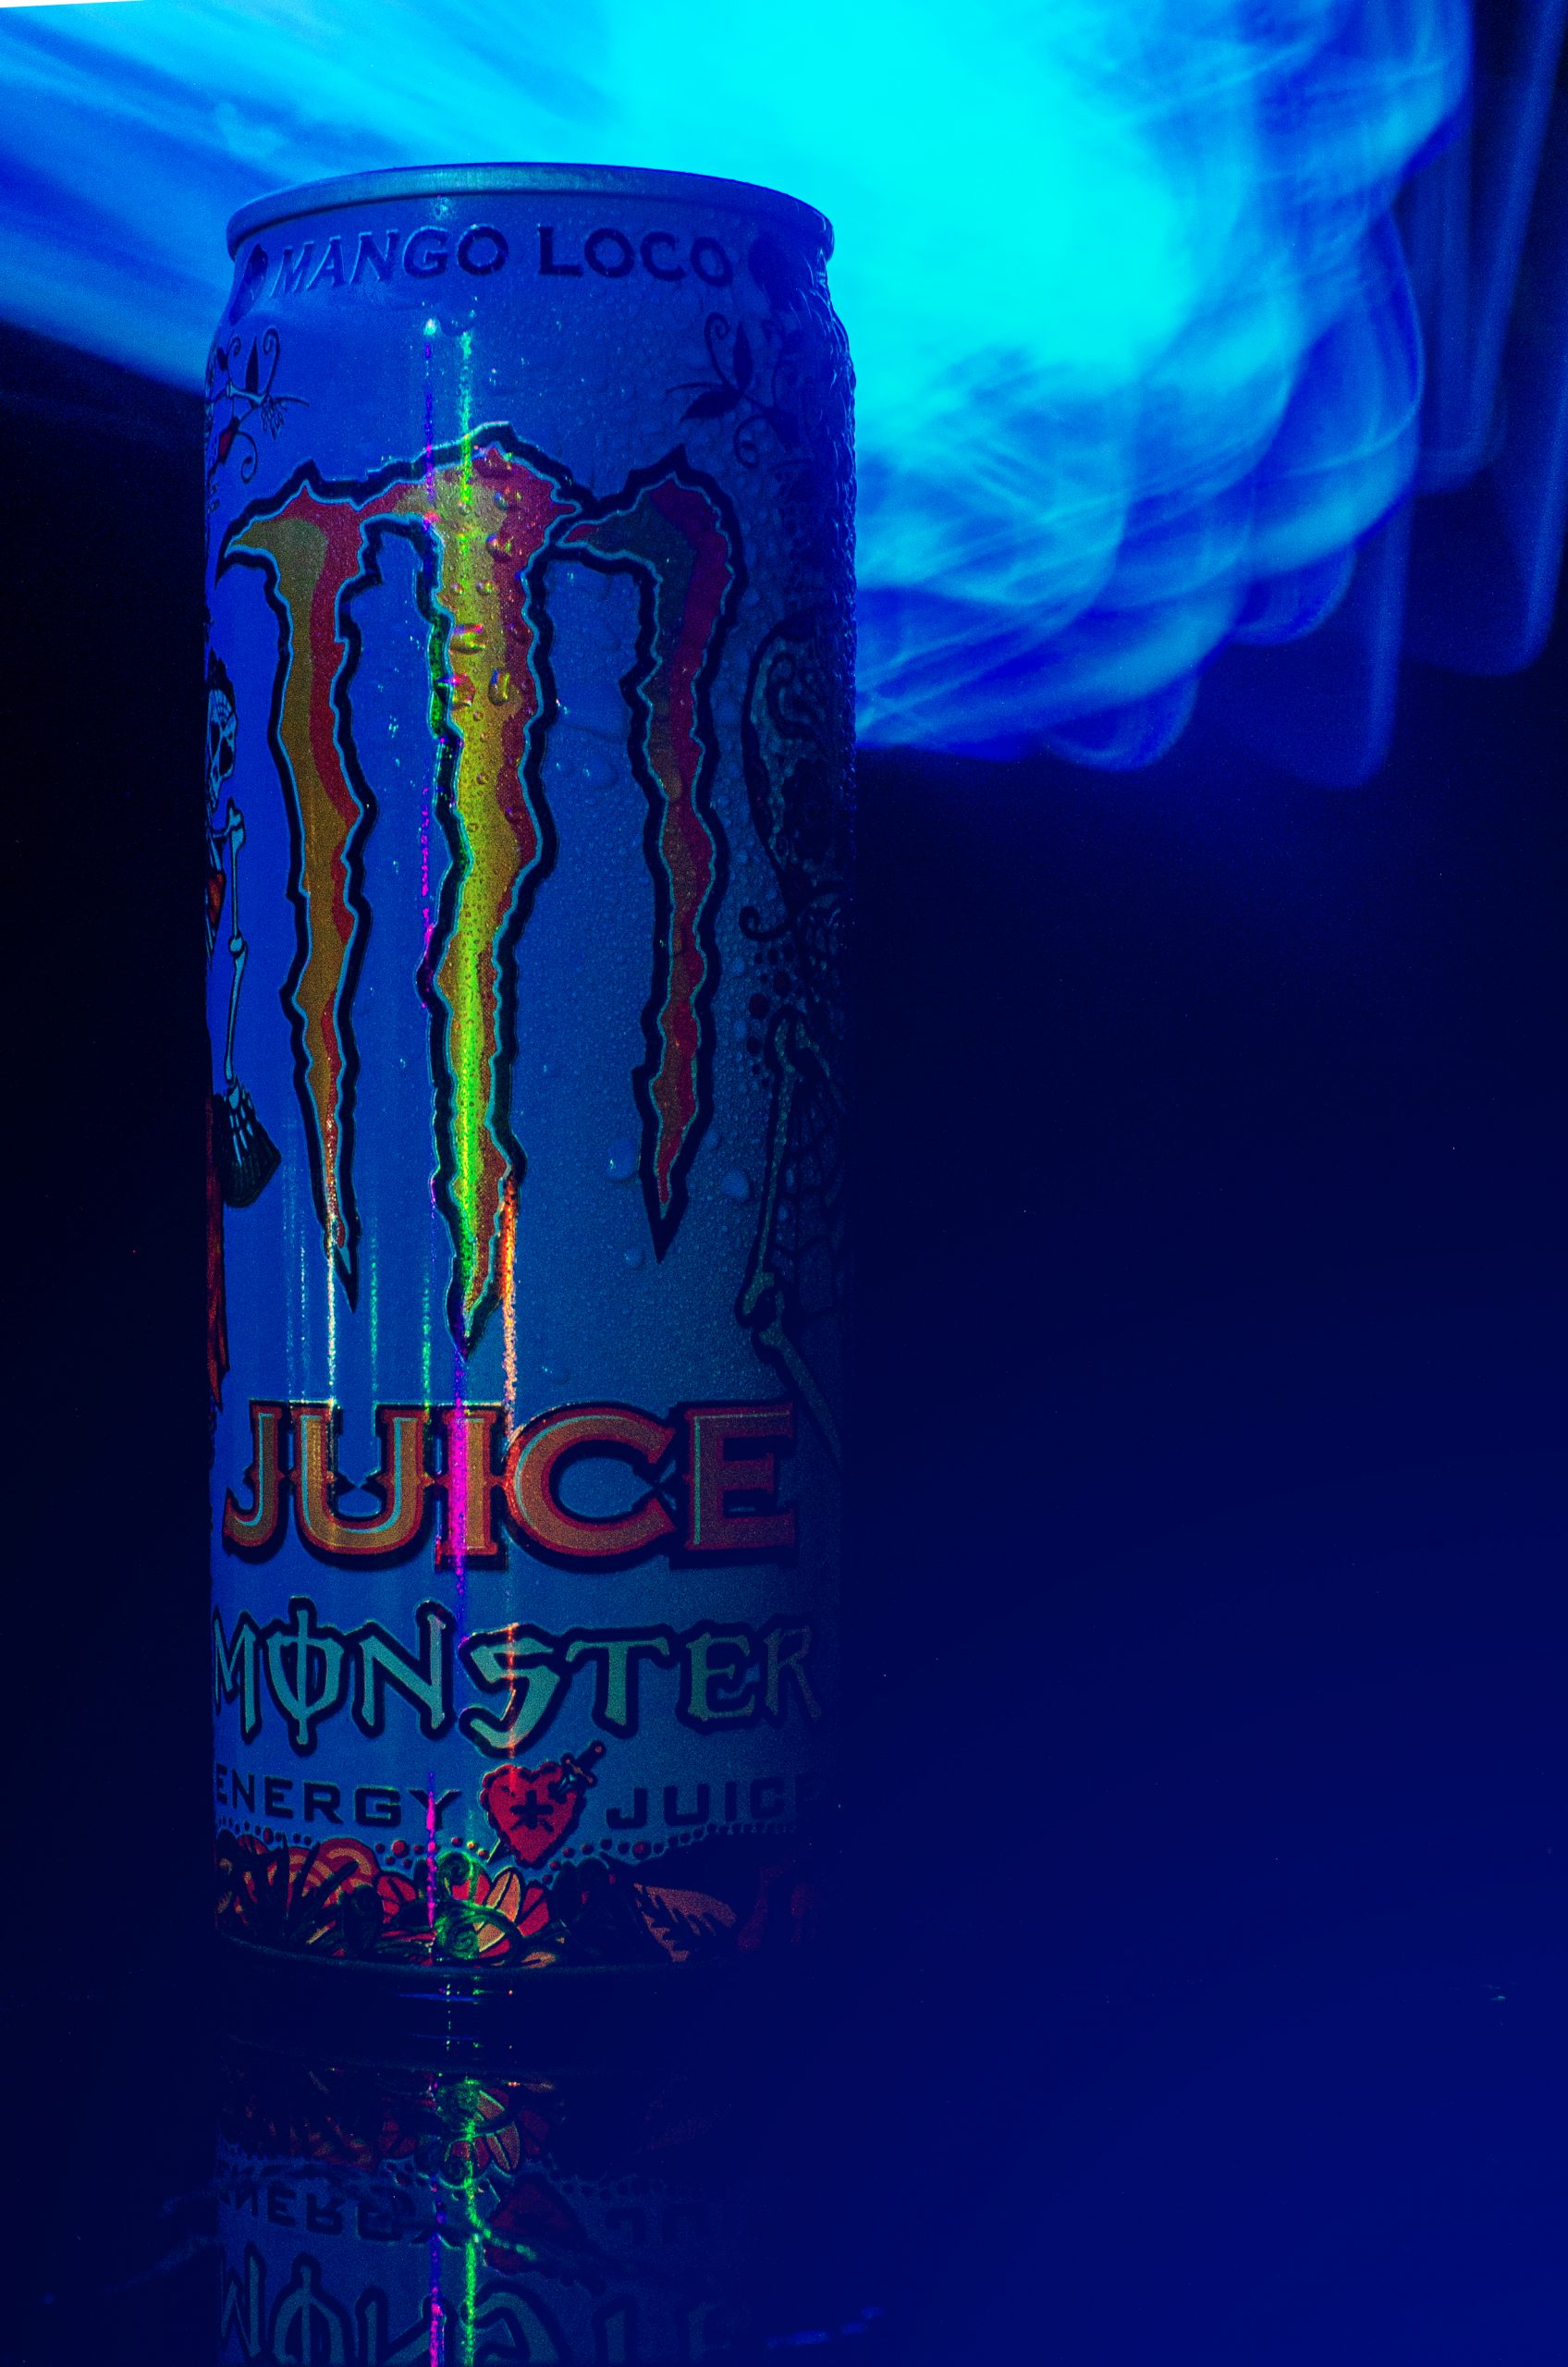 Monster energy drink can in blue light